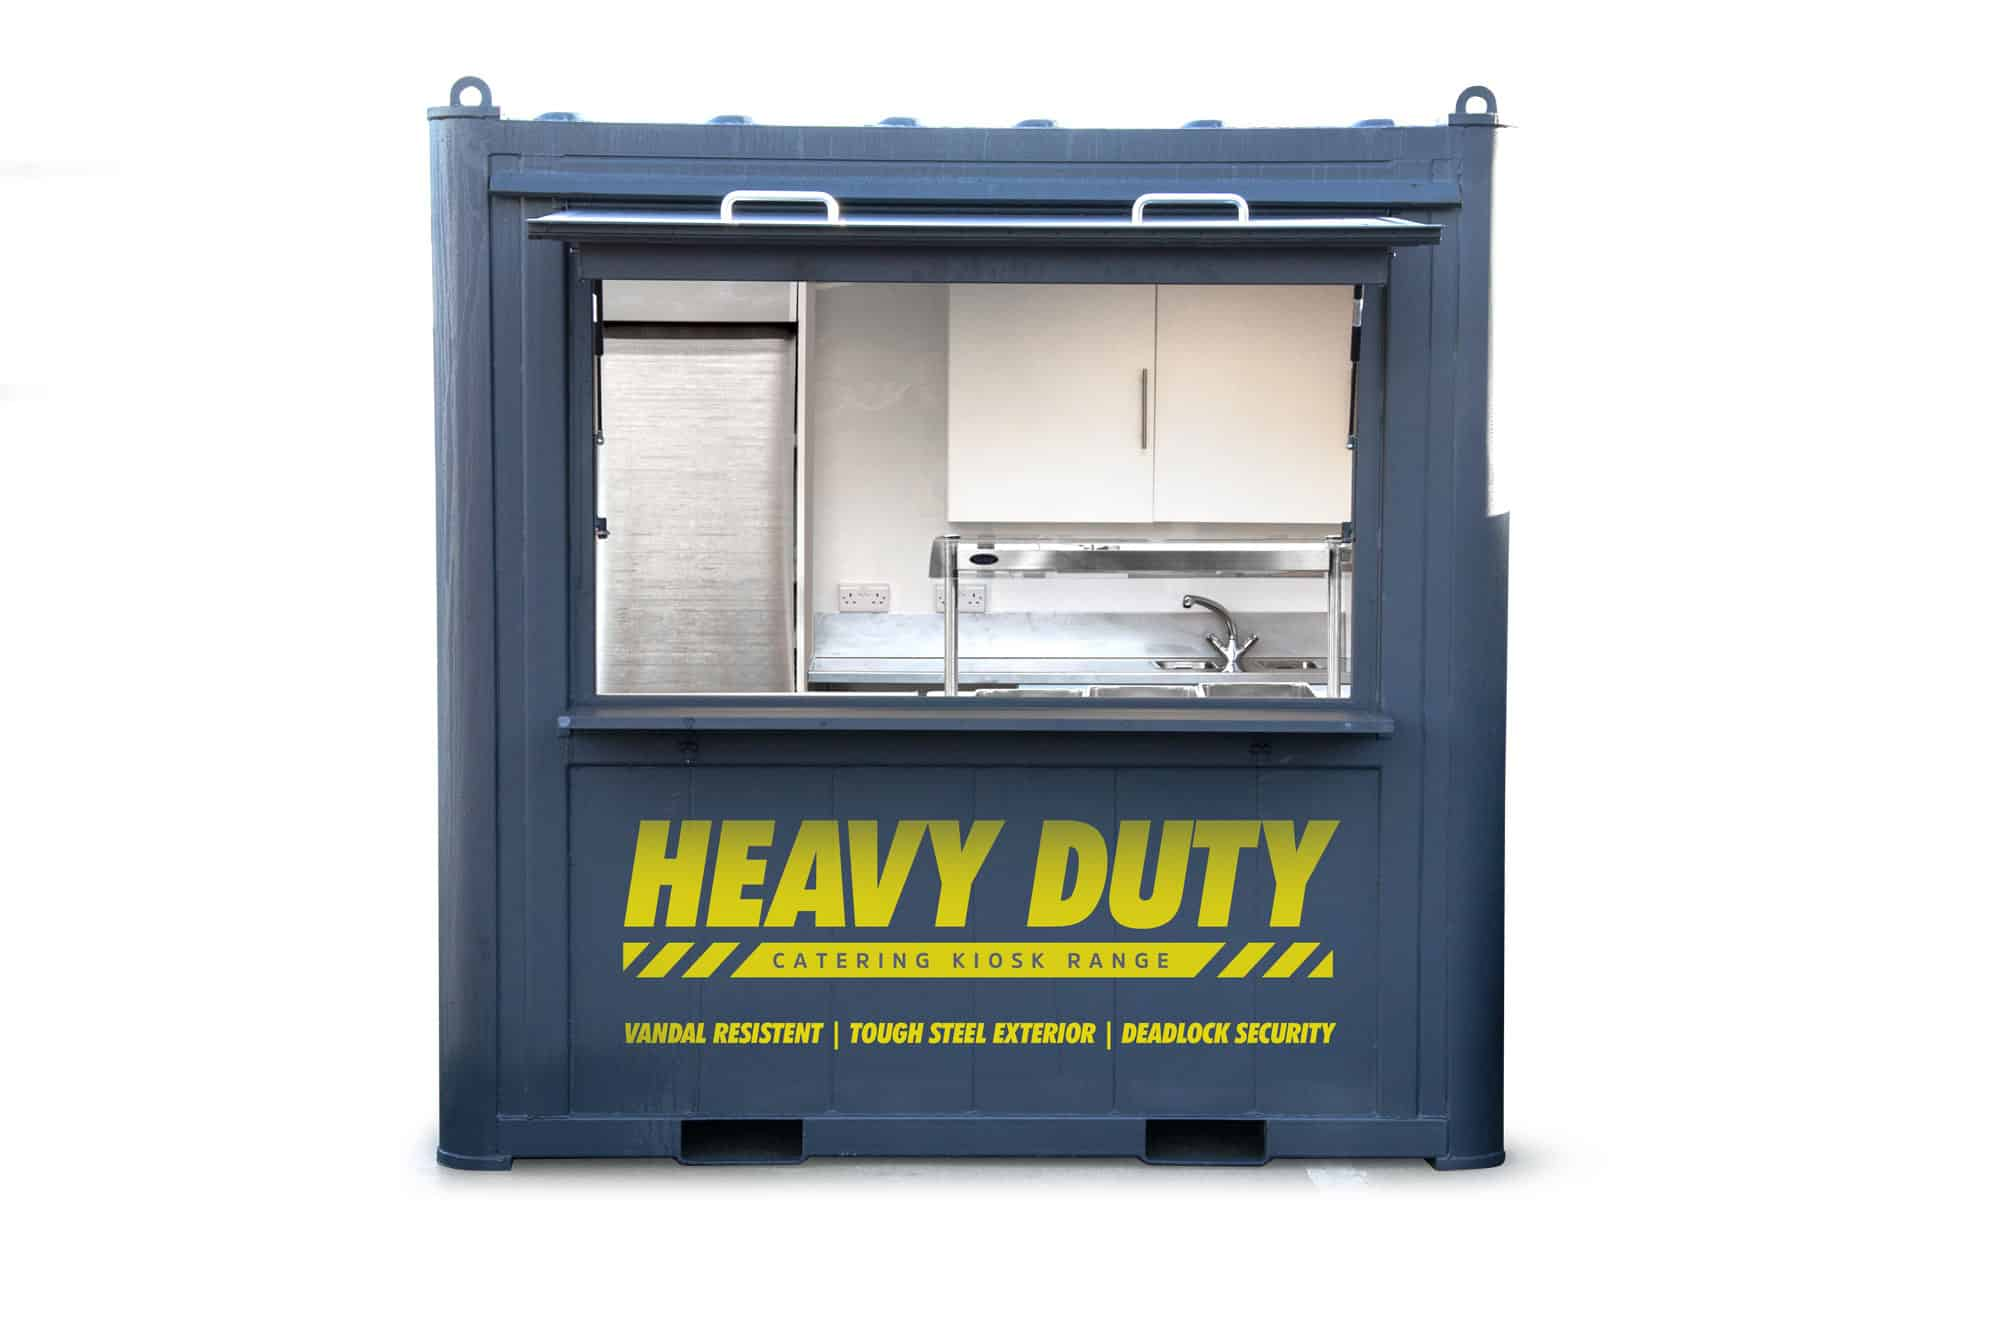 Kiosk Heavy Duty